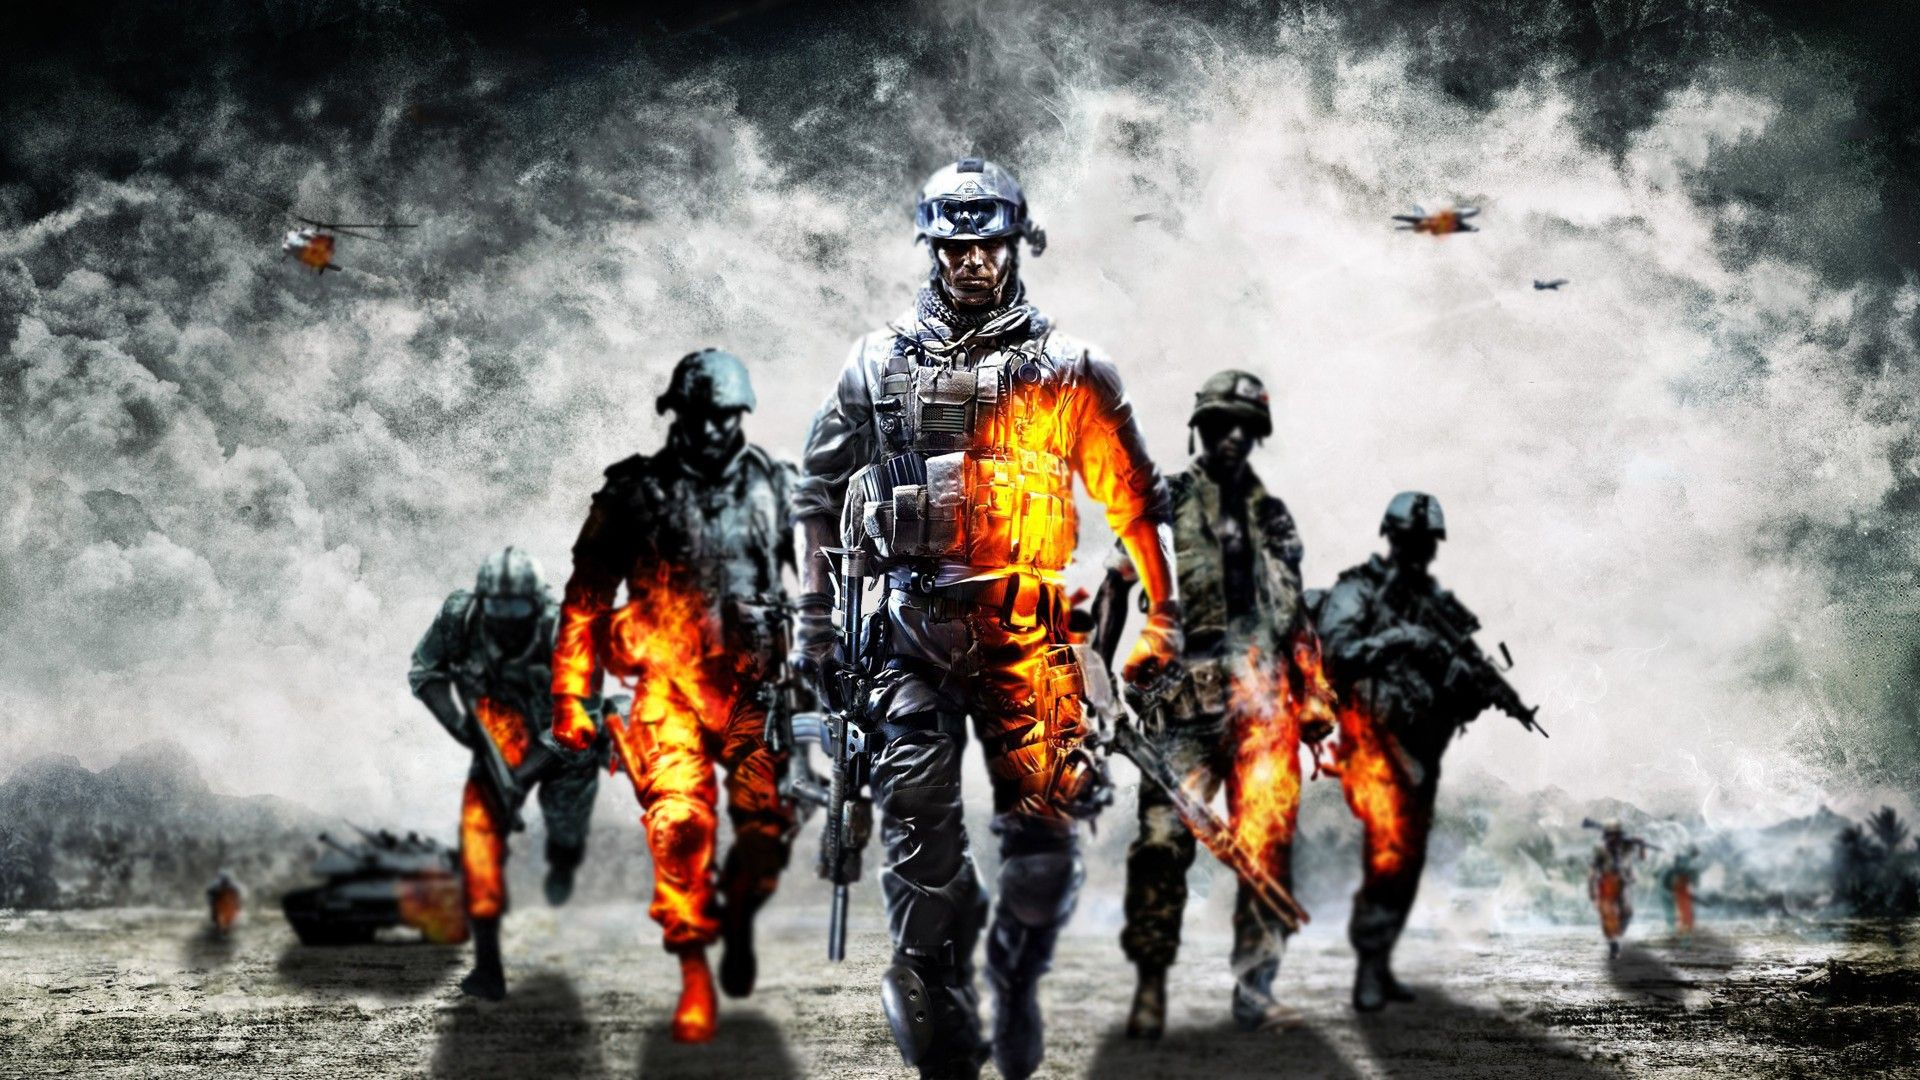 10 Most Popular Cool Gaming Wallpapers Hd 1920x1080 Full: Wallpapers, Fond D'ecran Pour Battlefield : Bad Company 2